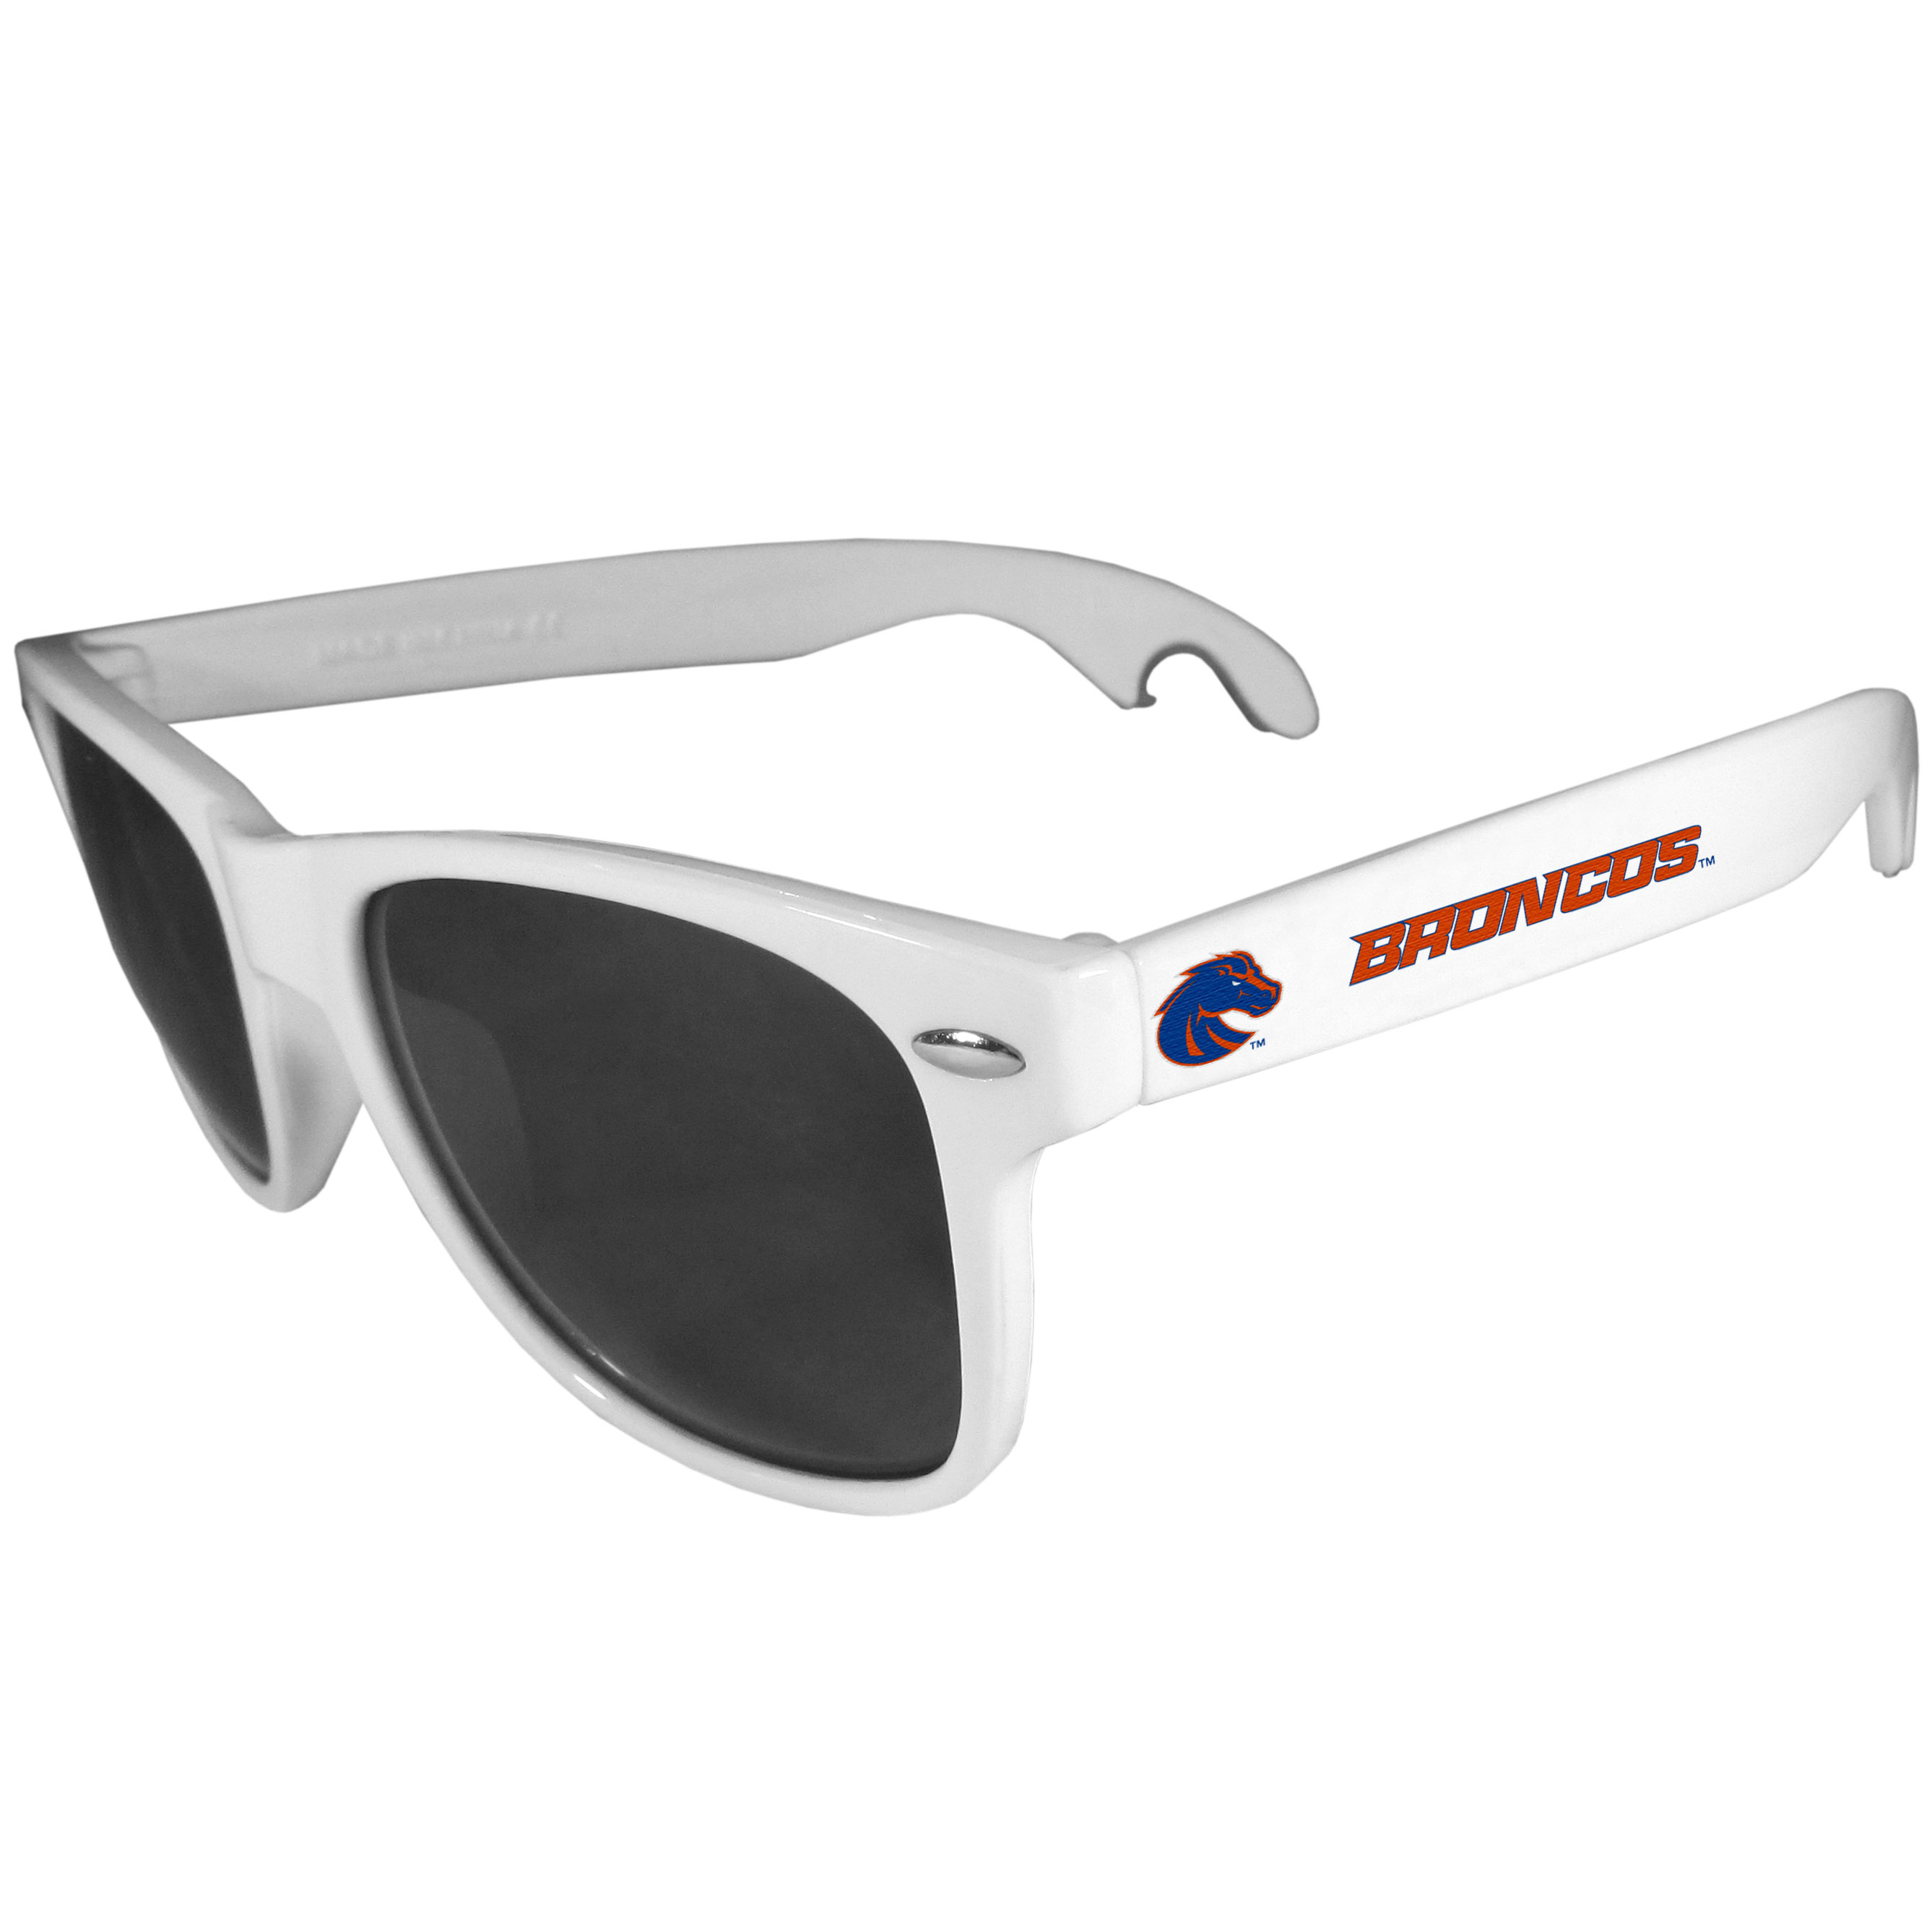 Boise St. Broncos Beachfarer Bottle Opener Sunglasses, White - Seriously, these sunglasses open bottles! Keep the party going with these amazing Boise St. Broncos bottle opener sunglasses. The stylish retro frames feature team designs on the arms and functional bottle openers on the end of the arms. Whether you are at the beach or having a backyard BBQ on game day, these shades will keep your eyes protected with 100% UVA/UVB protection and keep you hydrated with the handy bottle opener arms.